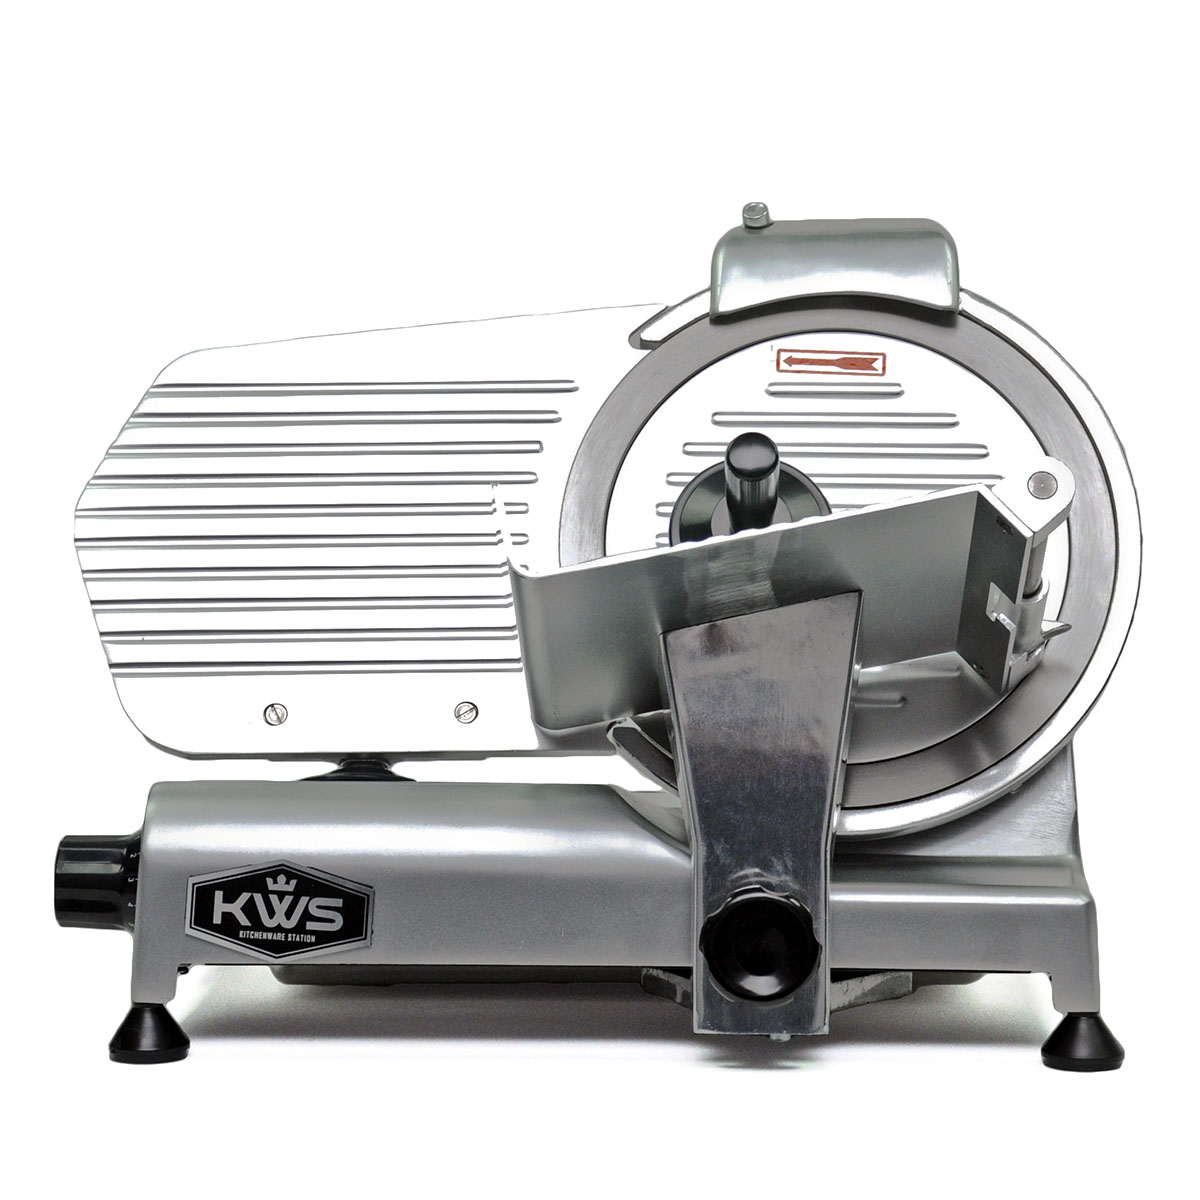 Ms 10ns 10 320w Meat Slicer With Stainless Steel Blade